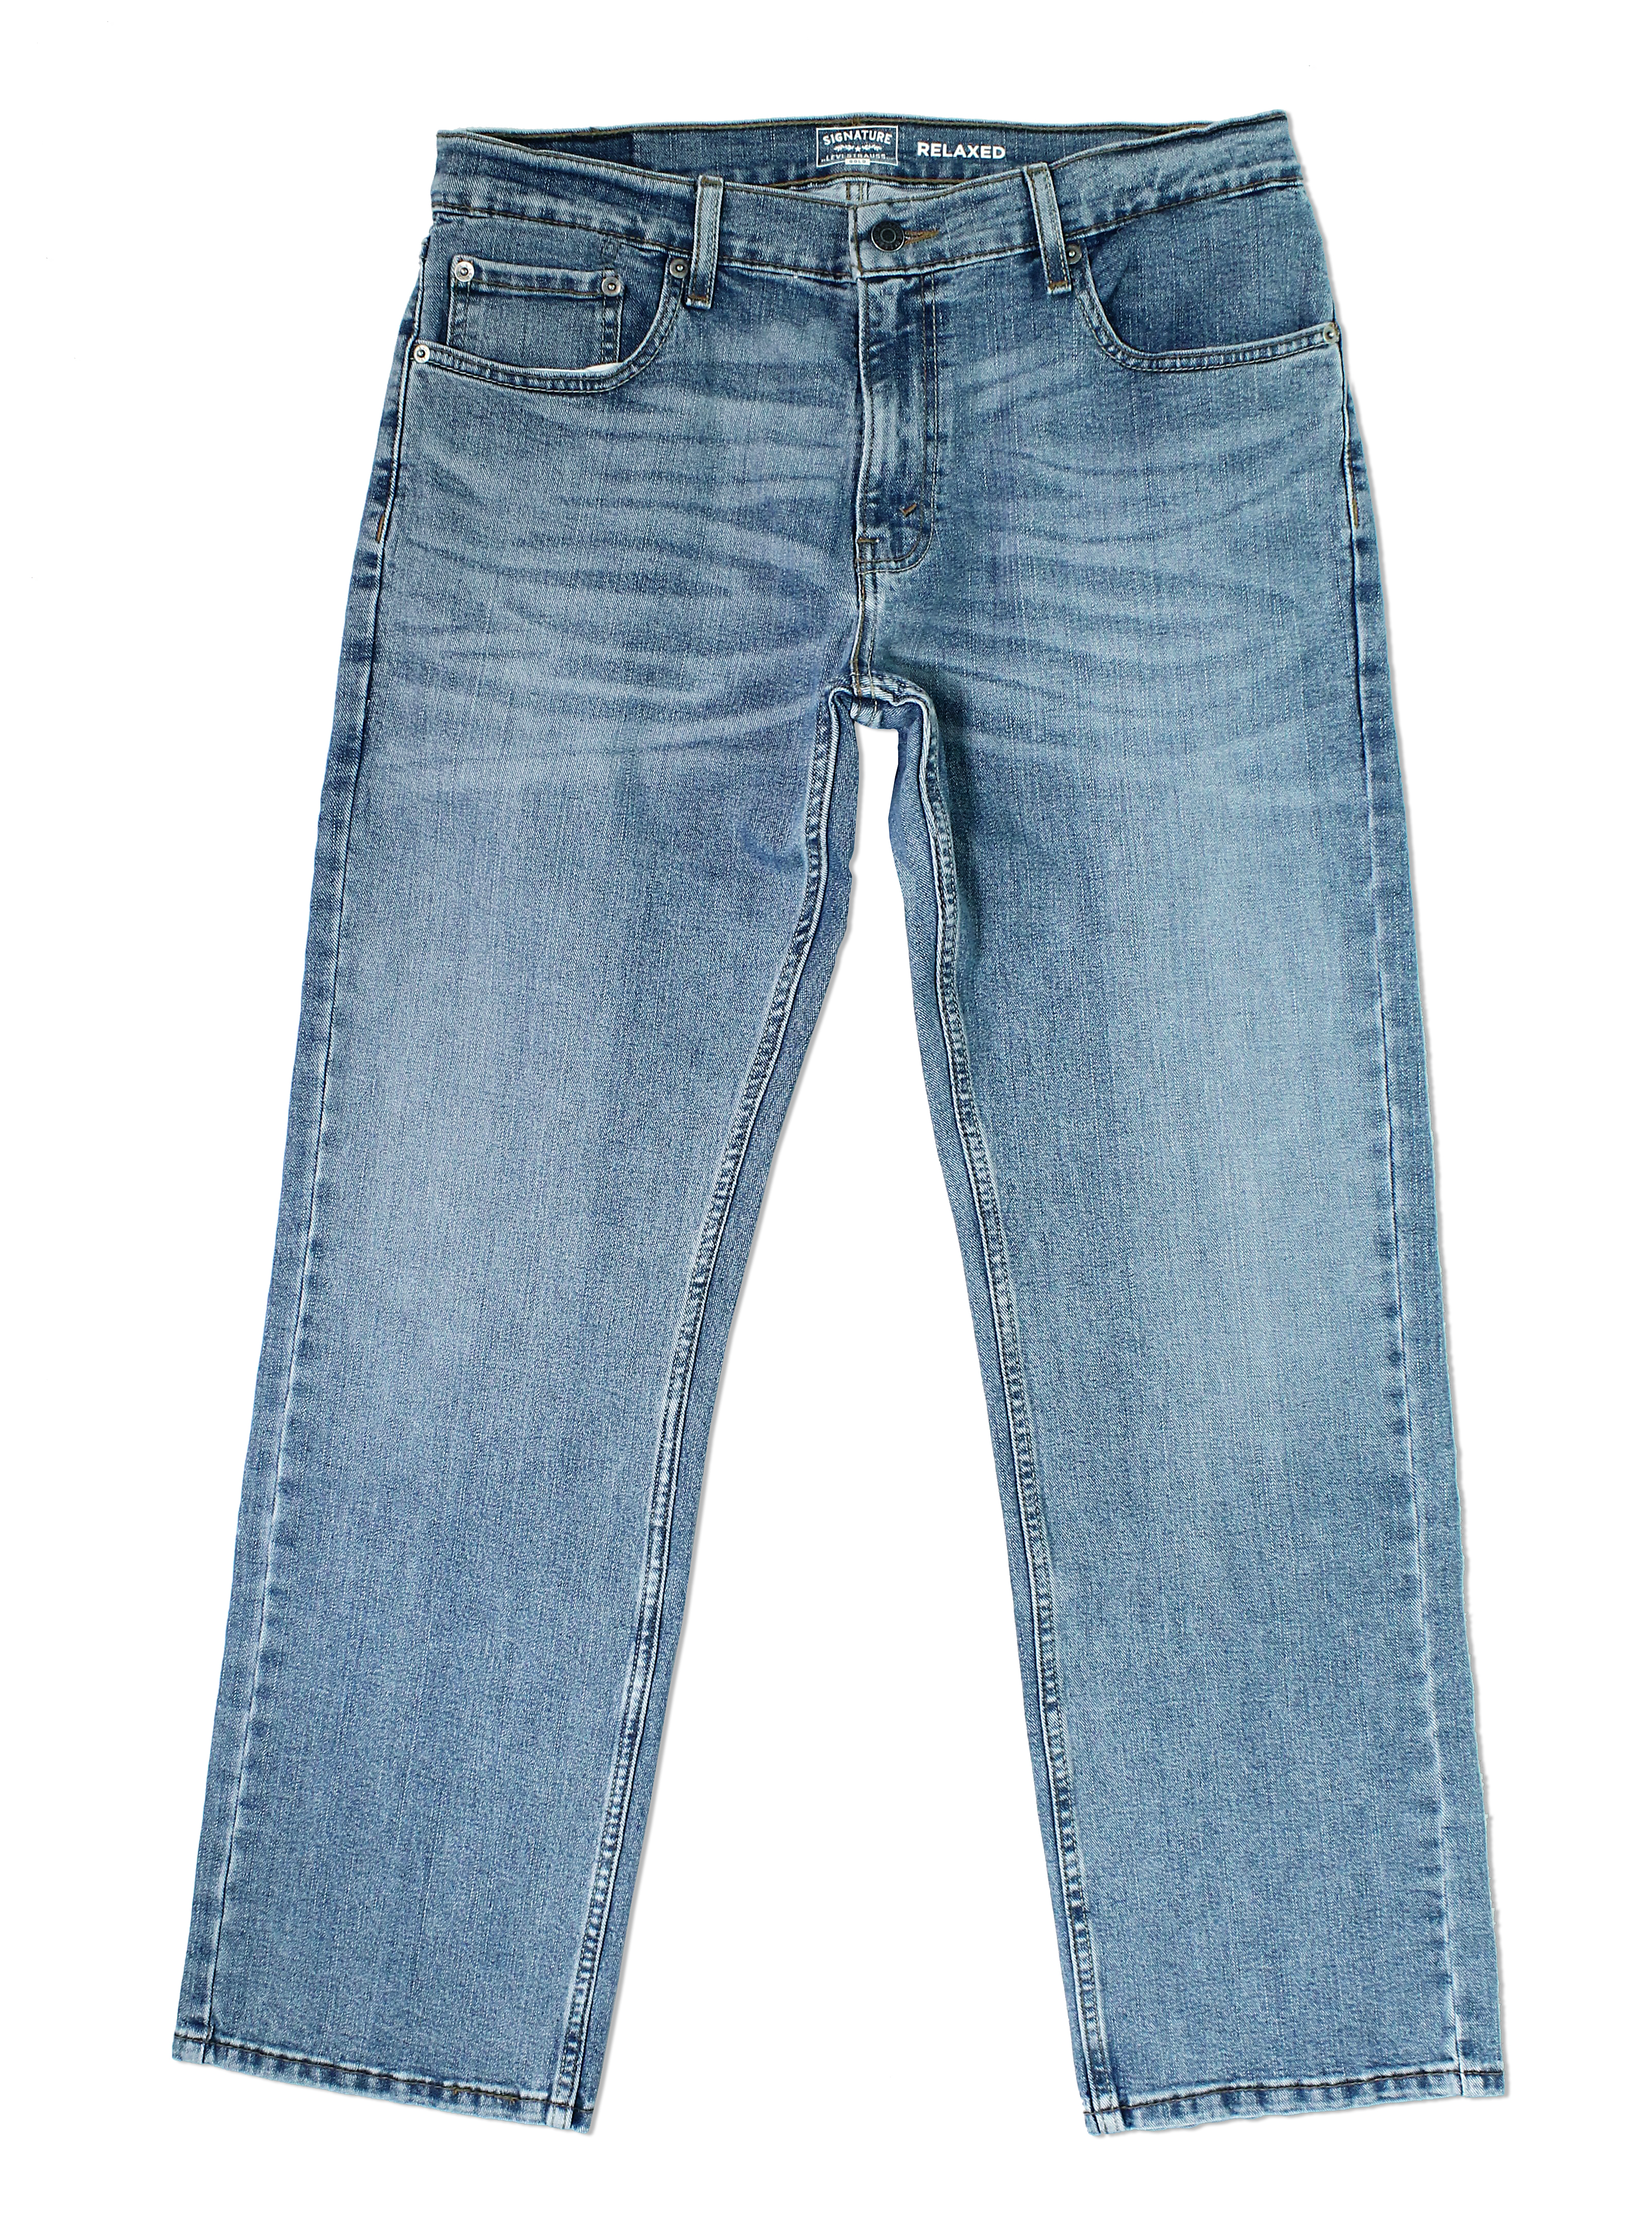 Levi-039-s-Jeans-Signature-Gold-by-Levi-Strauss-NEW-Titan-Blue-Men-Relaxed-Fit-Jeans thumbnail 3